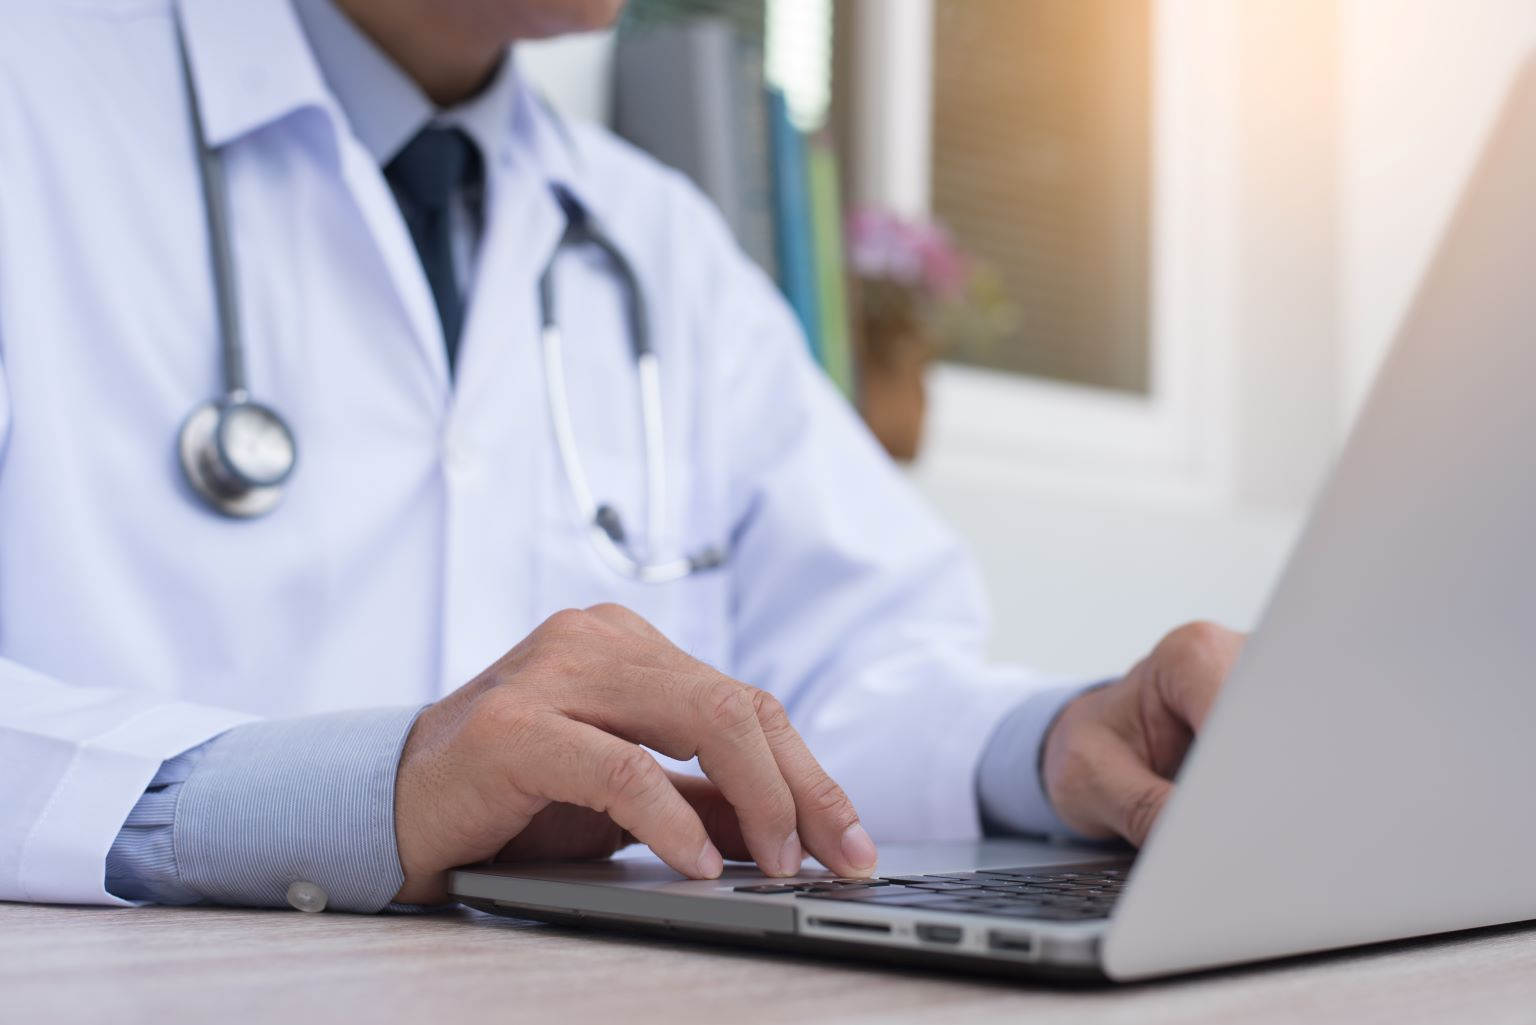 Male clinician working on a laptop